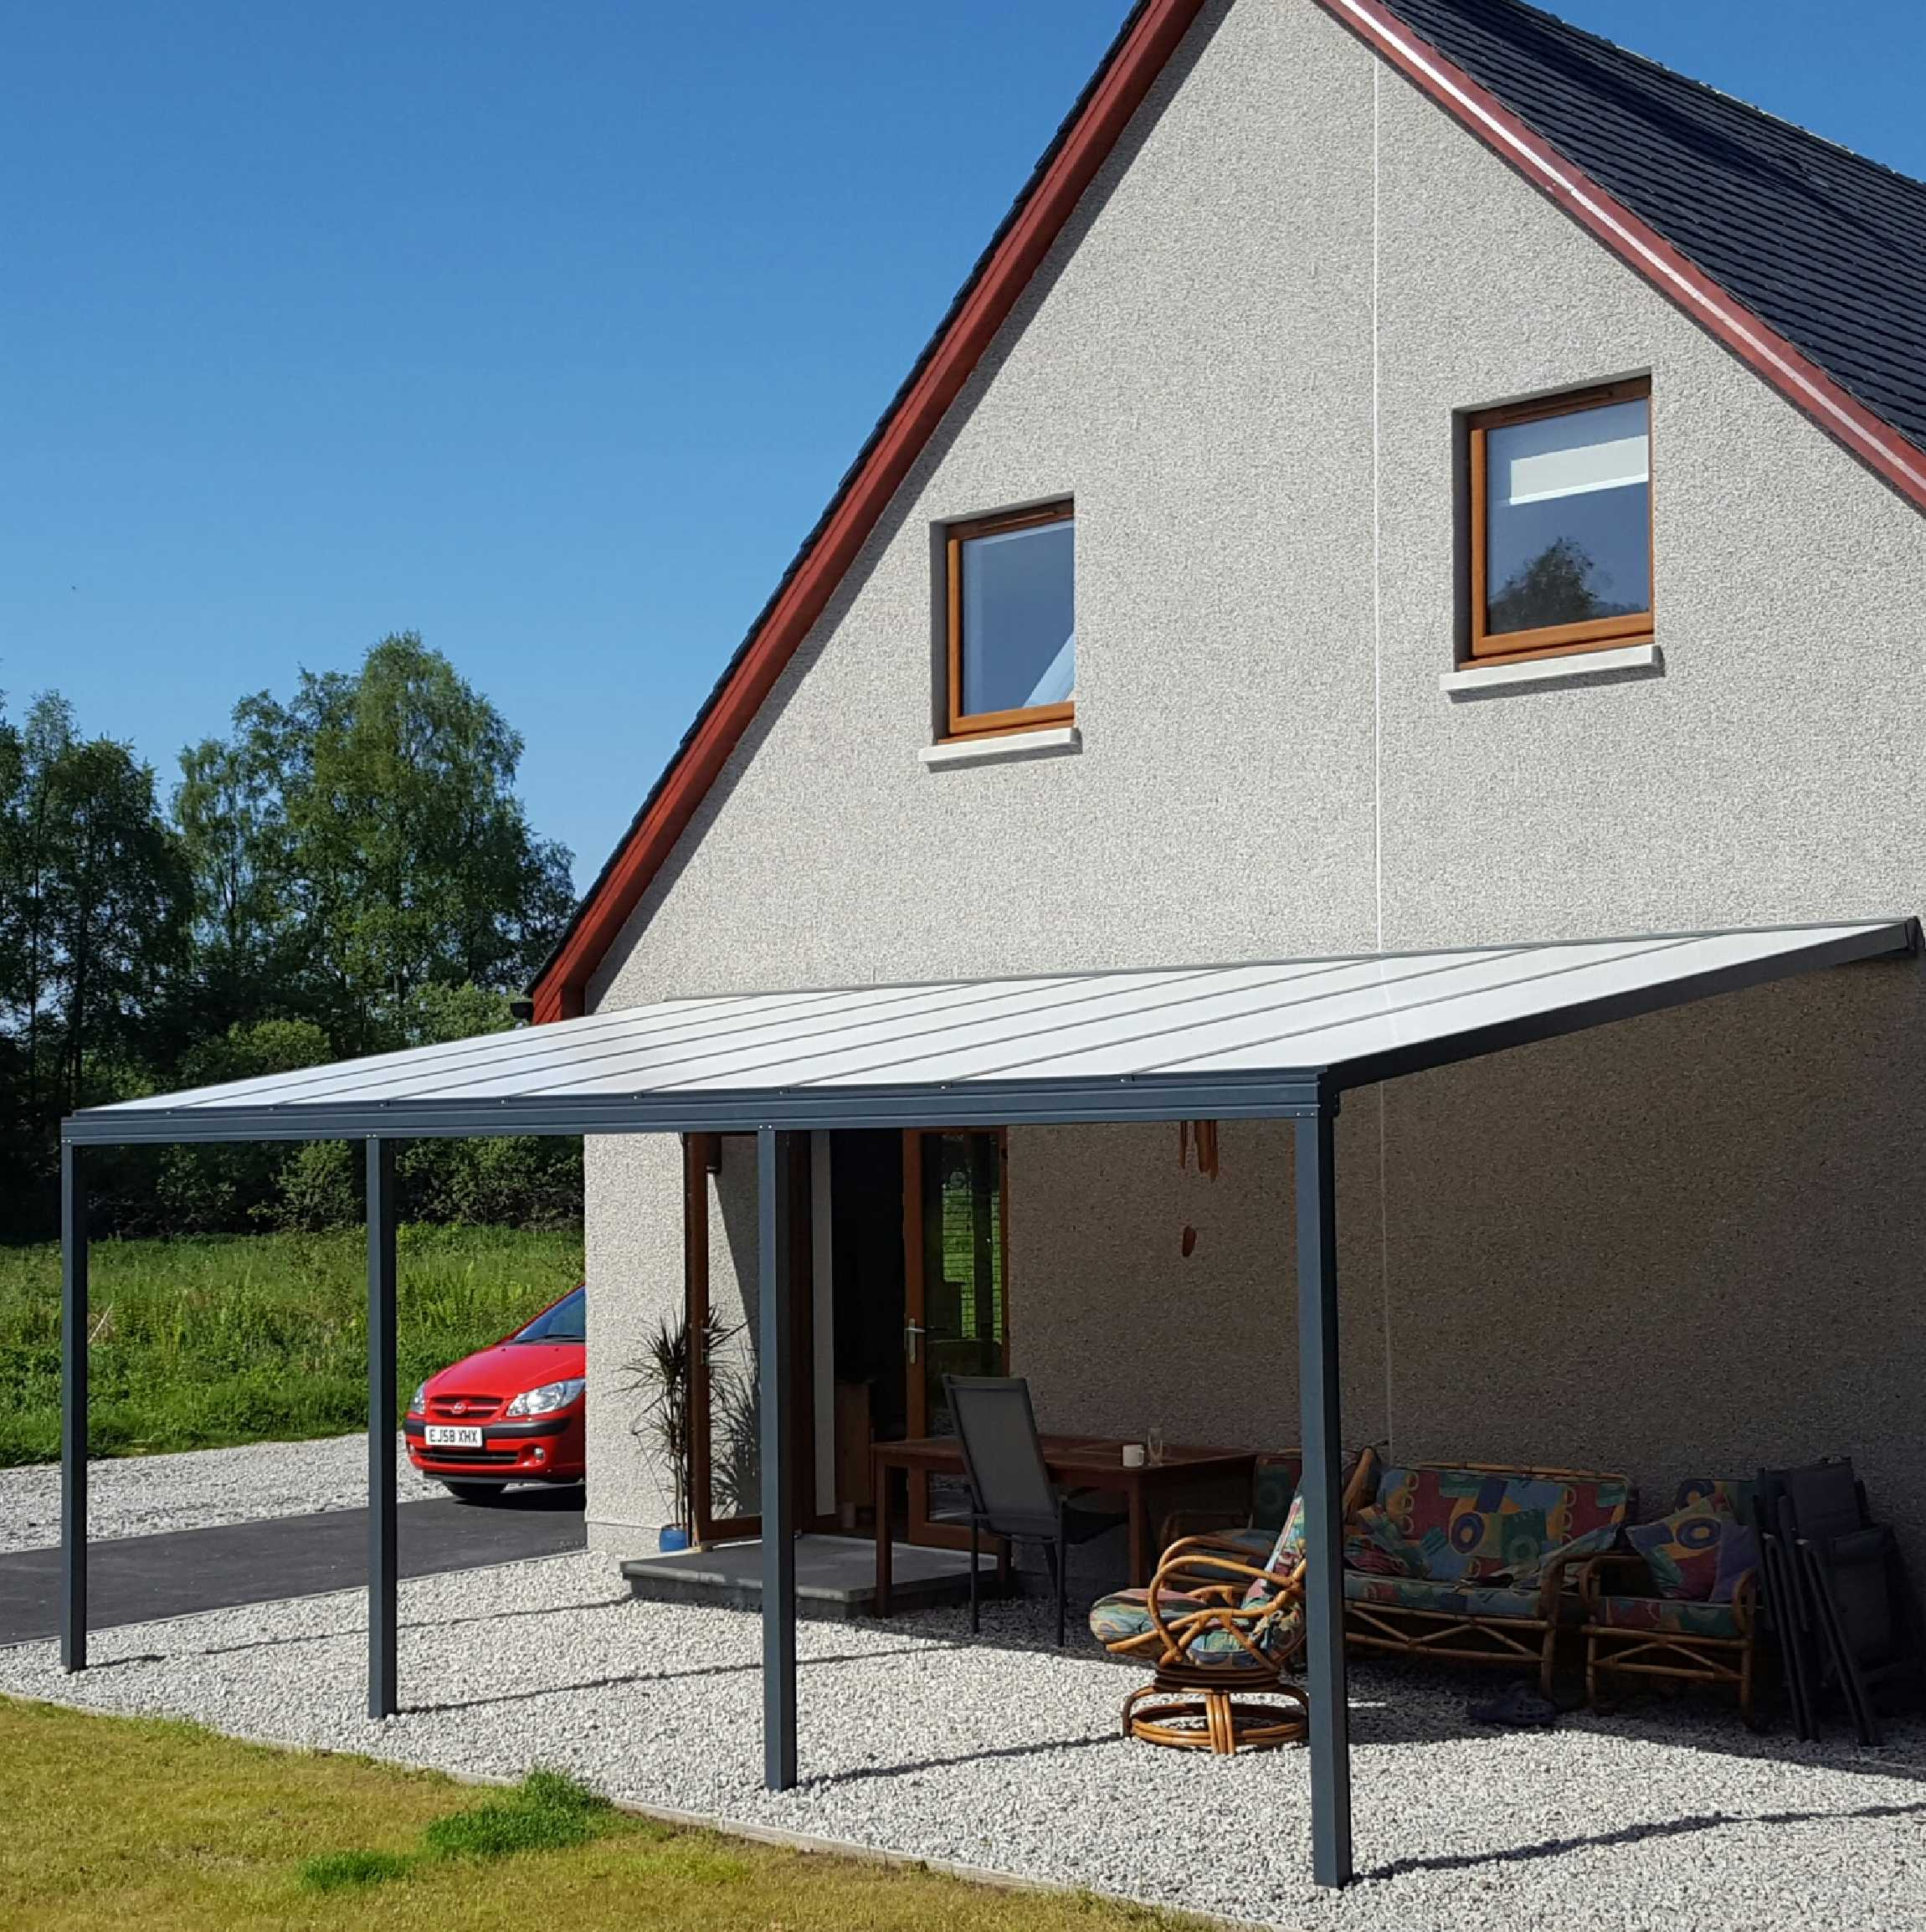 Great selection of Omega Smart Lean-To Canopy, Anthracite Grey, 16mm Polycarbonate Glazing - 6.3m (W) x 2.0m (P), (4) Supporting Posts